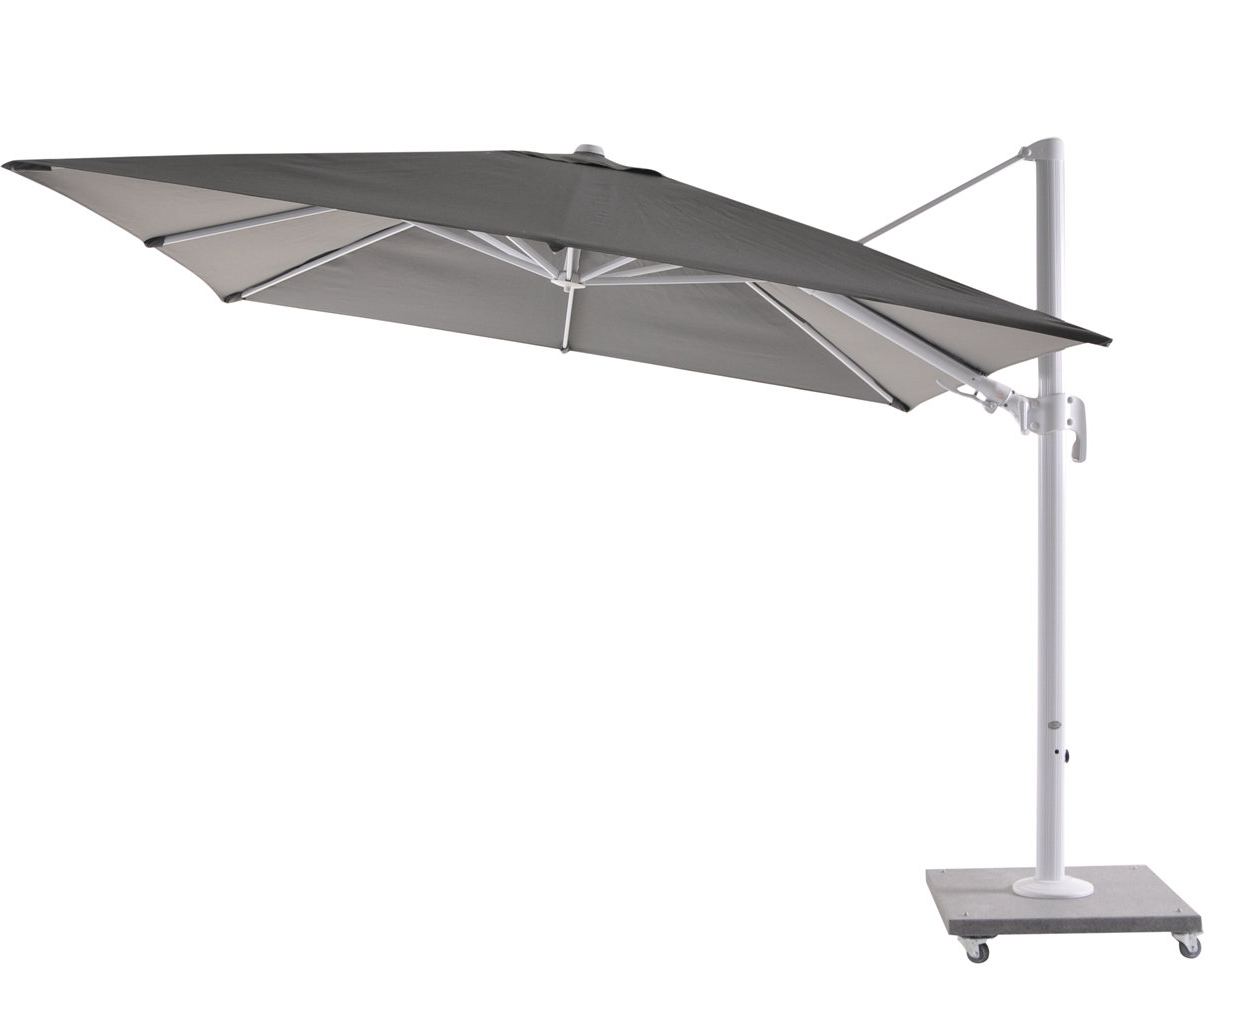 Most Up To Date Bozarth 10' Square Cantilever Umbrella Regarding Windell Square Cantilever Umbrellas (View 11 of 20)